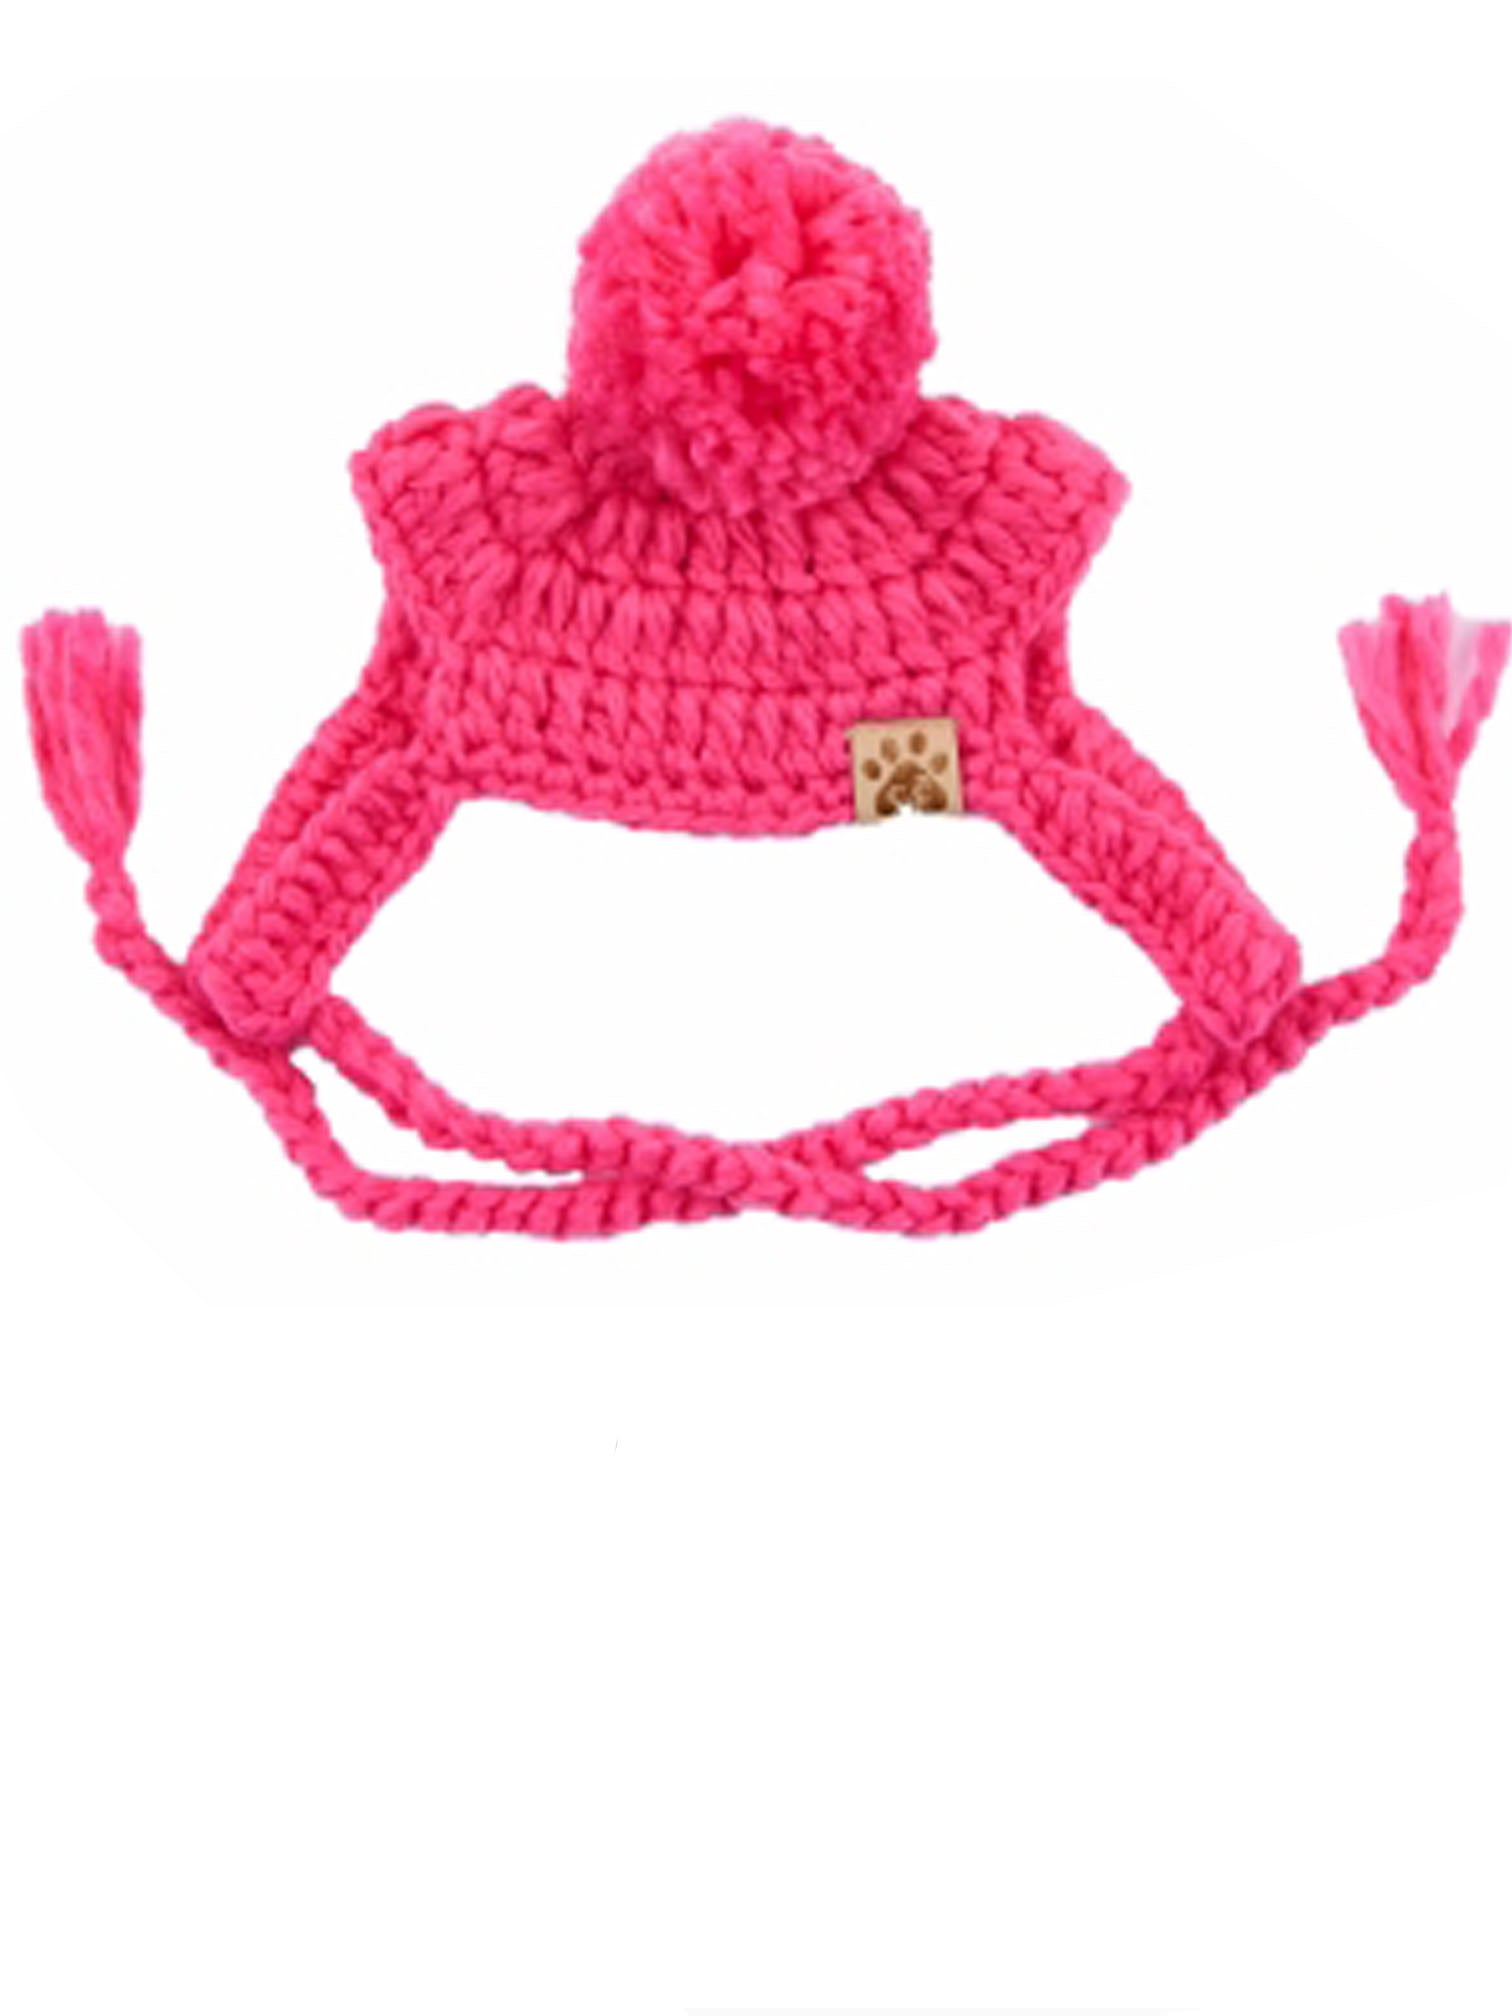 C.C Pet Beanies DH-1 New Candy Pink